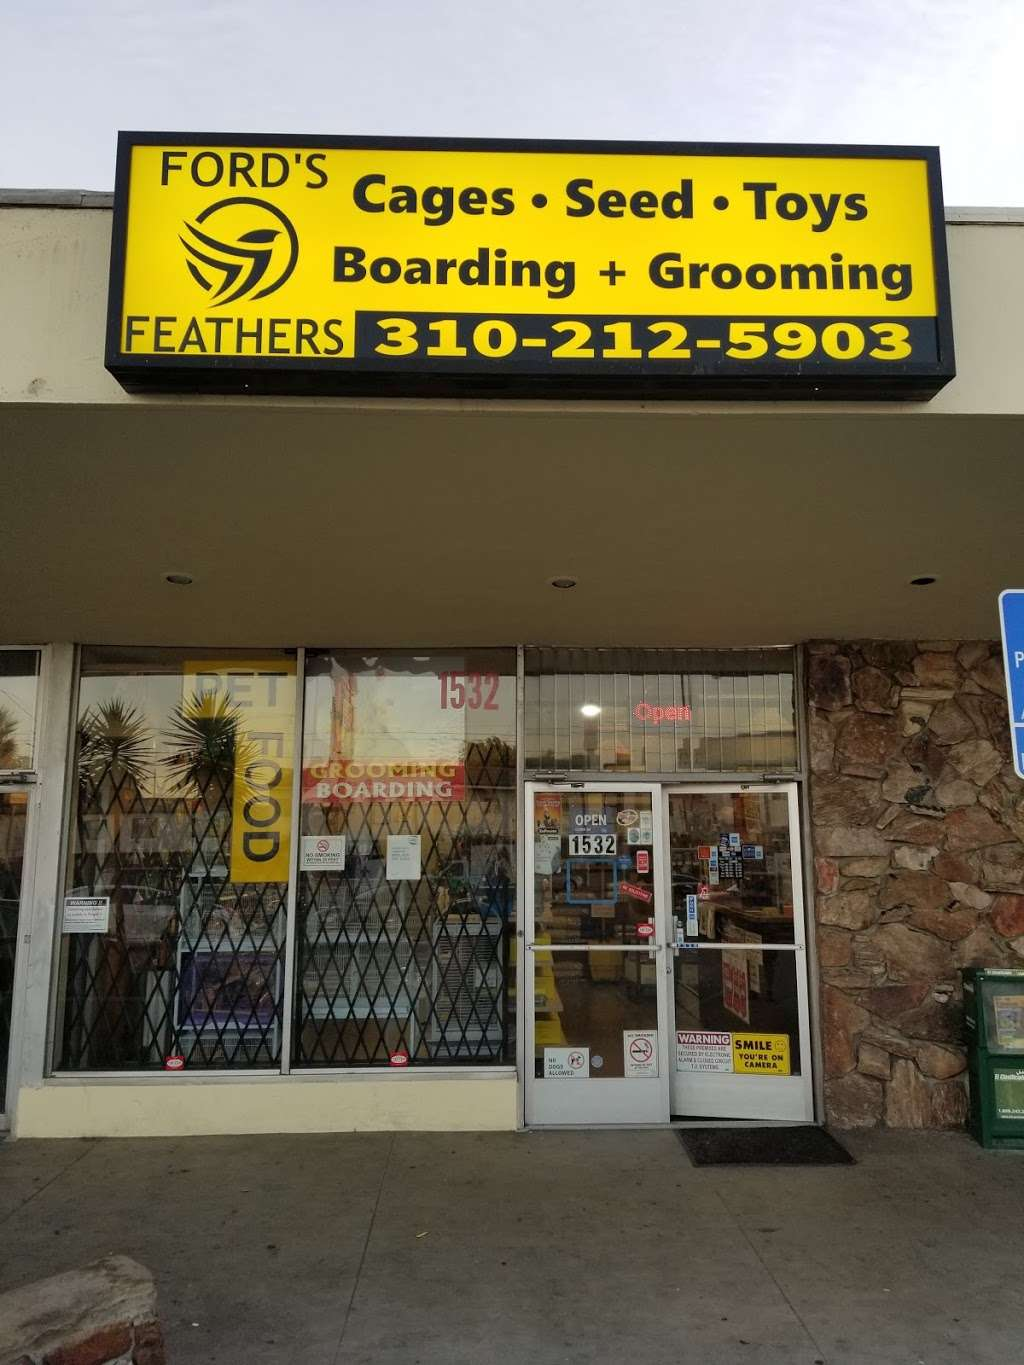 Fords Feathers - pet store  | Photo 1 of 10 | Address: 1532 W Carson St, Torrance, CA 90501, USA | Phone: (310) 212-5903